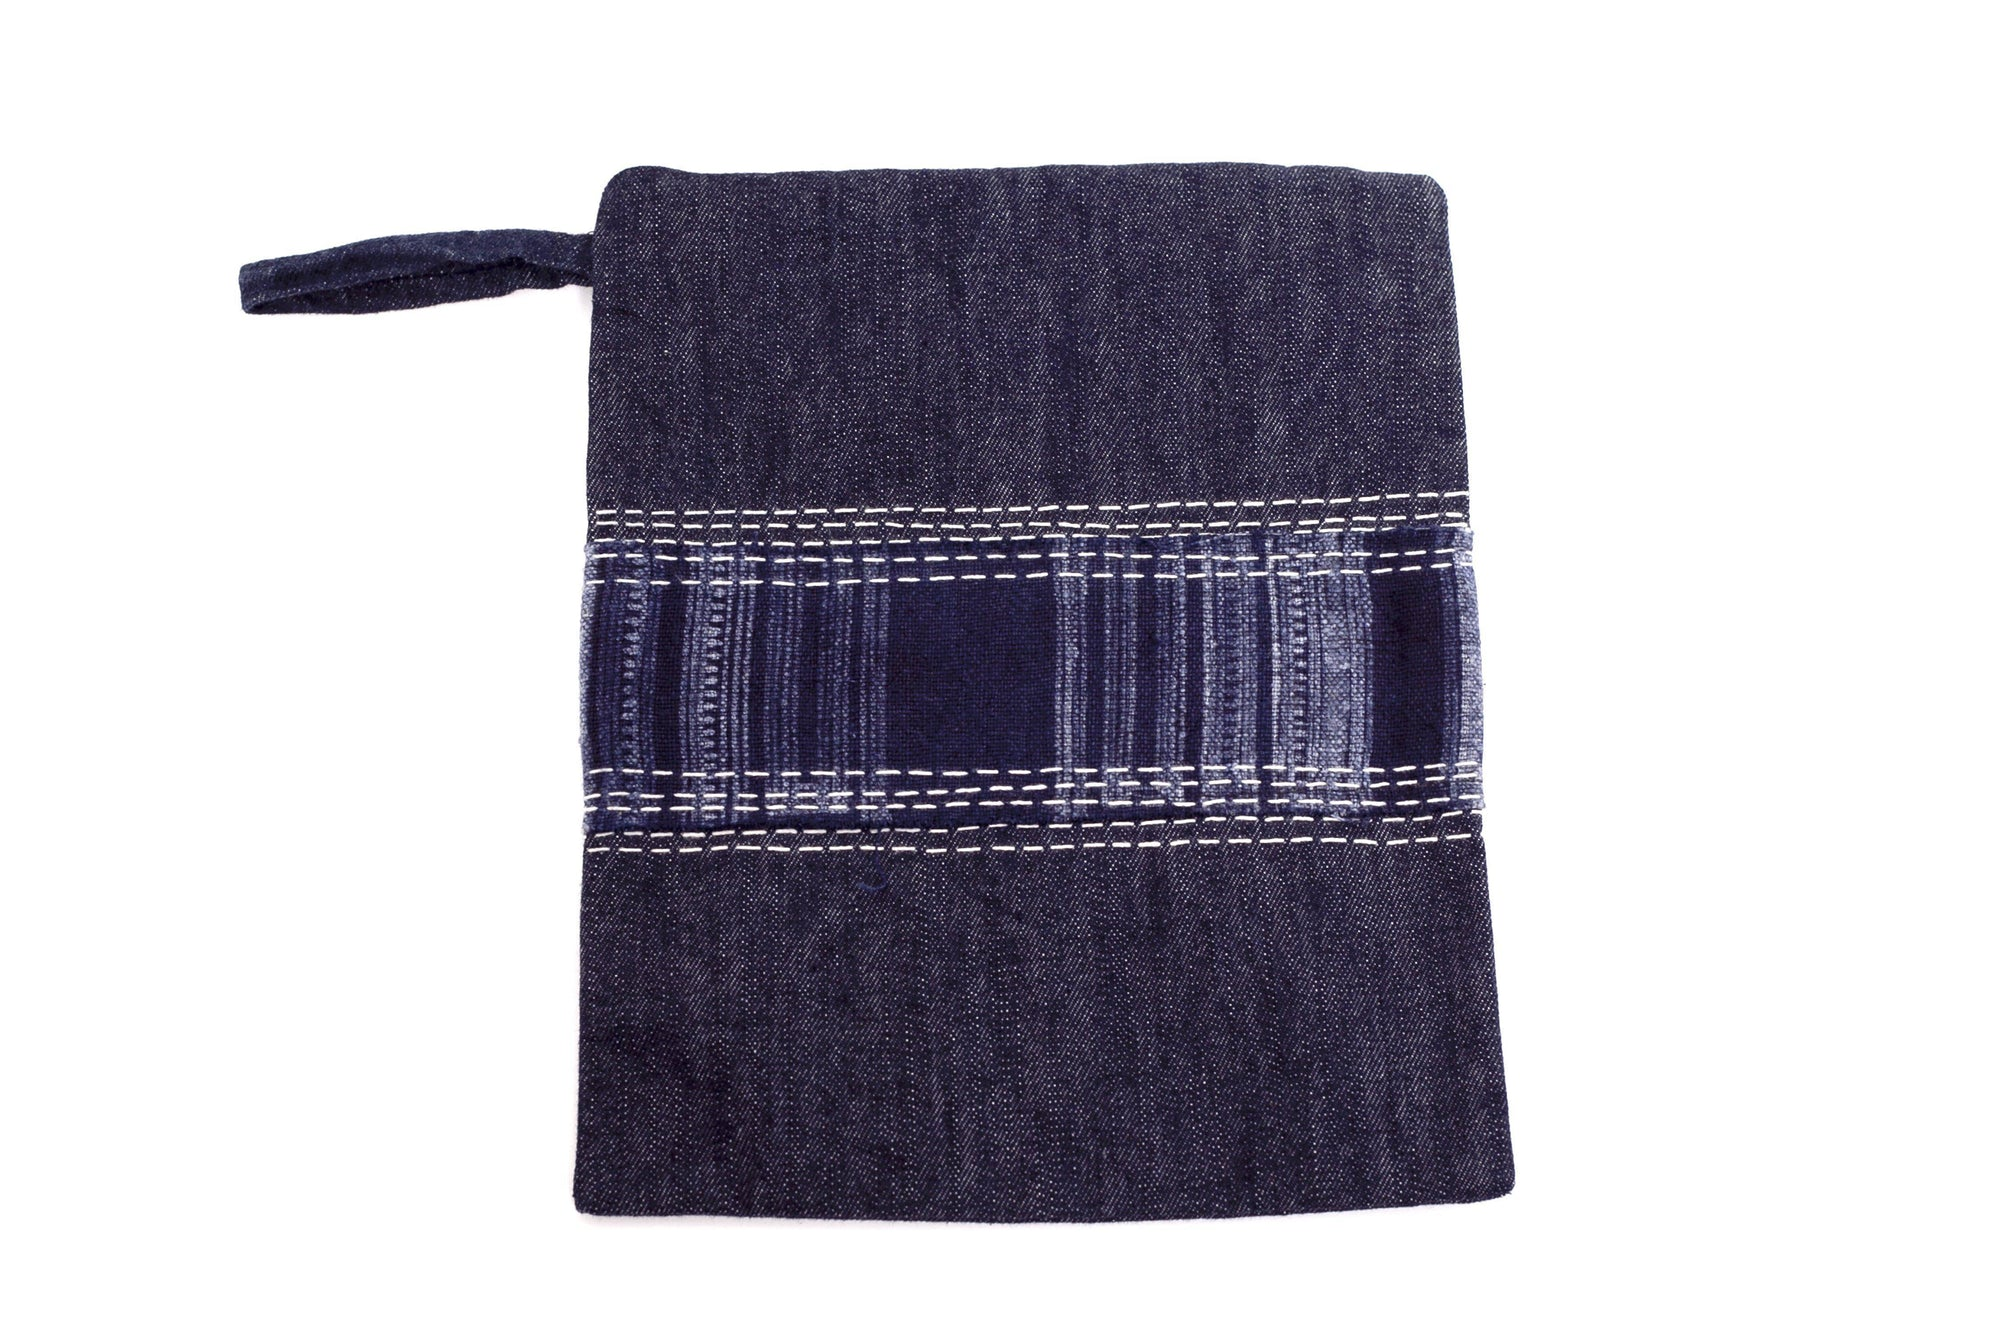 Mekong Plus Denim Multi-Purpose Clutch or Accessories Bag